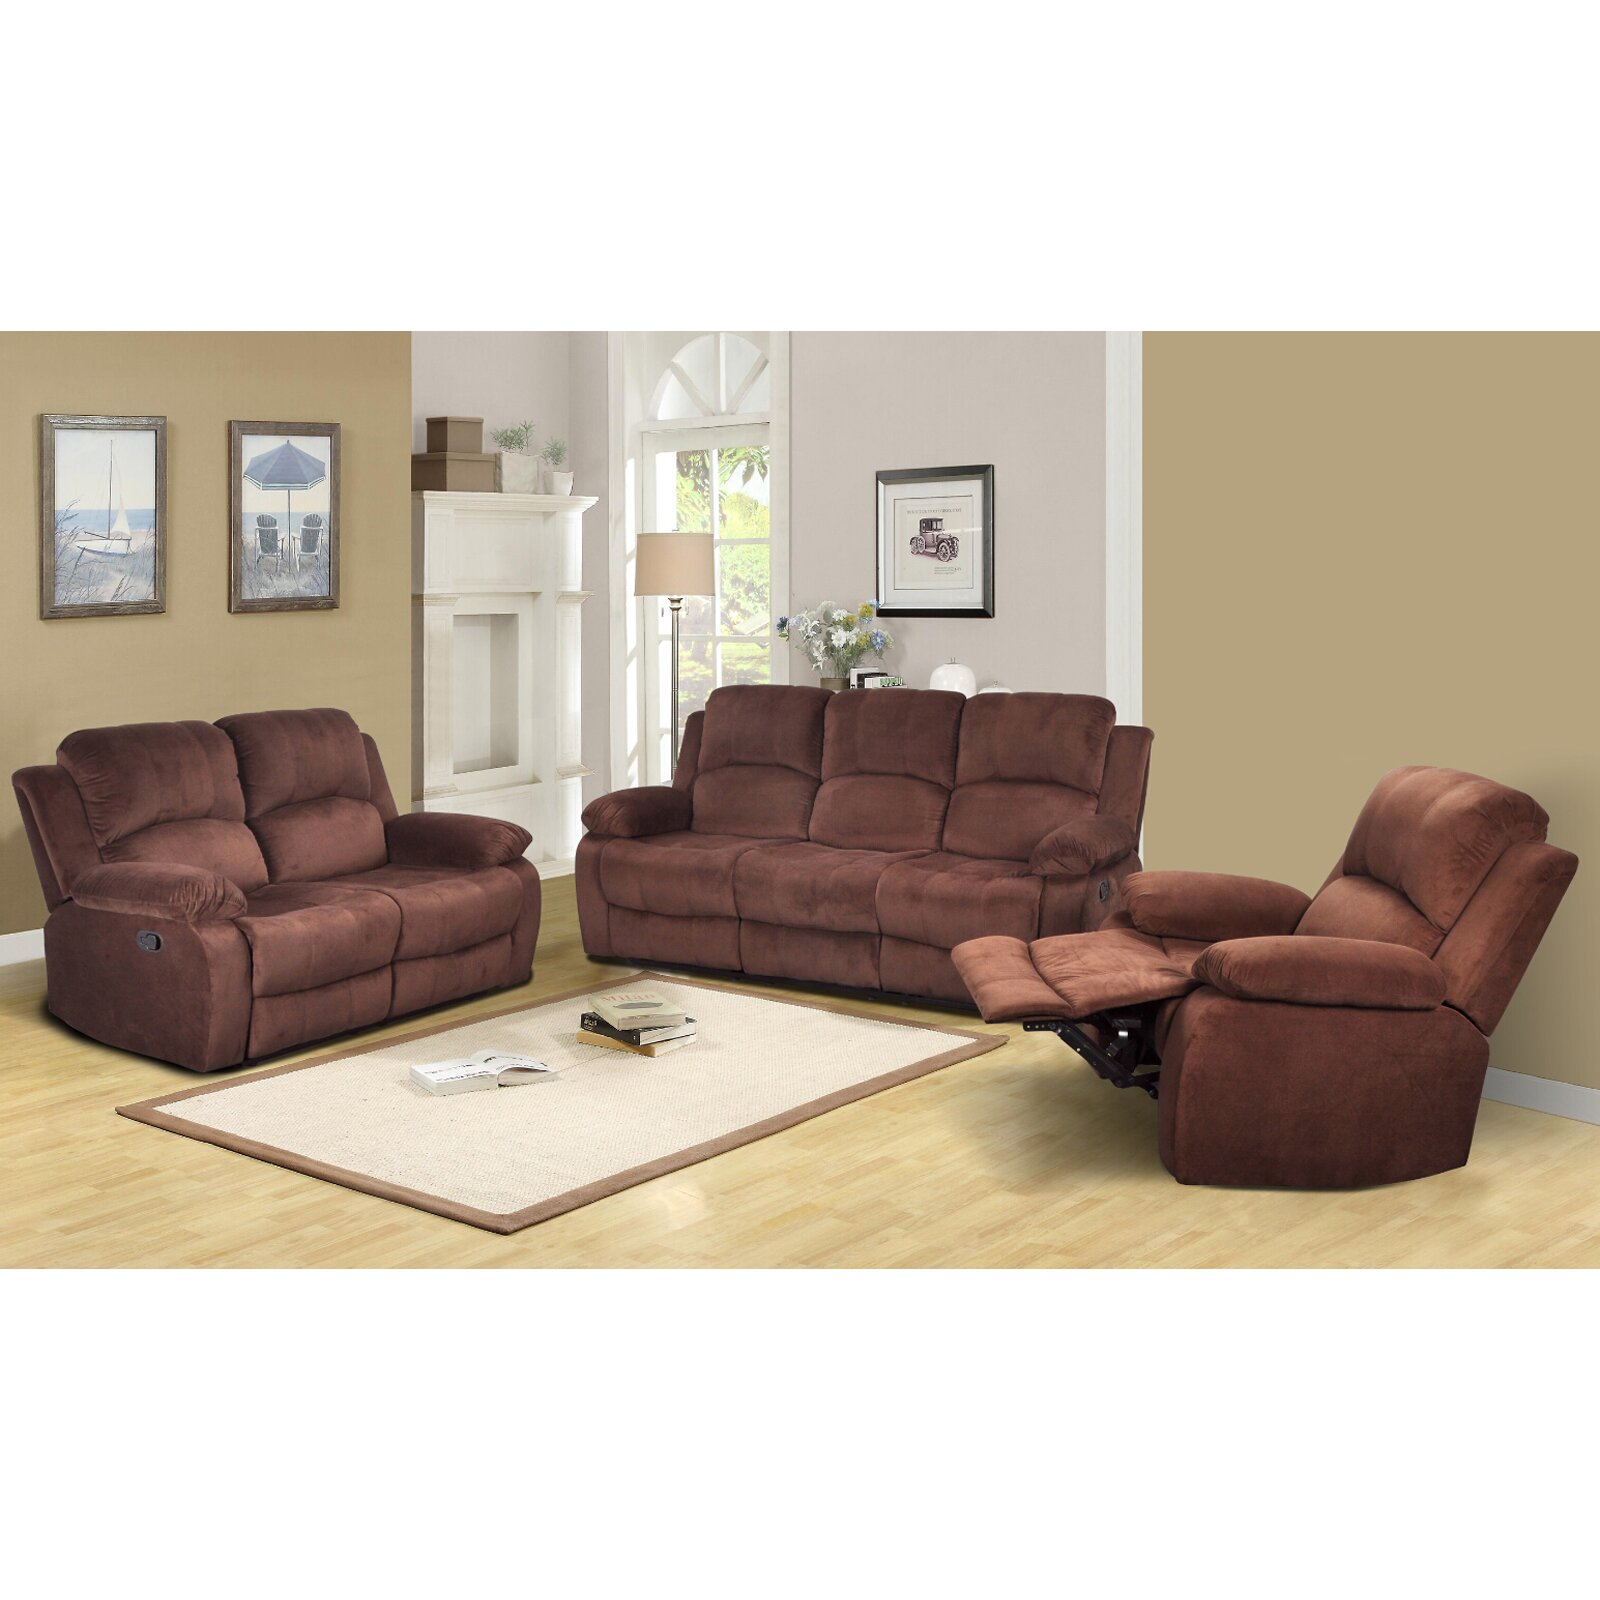 Beverly fine furniture denver 3 piece microfiber reclining for 3 piece living room set